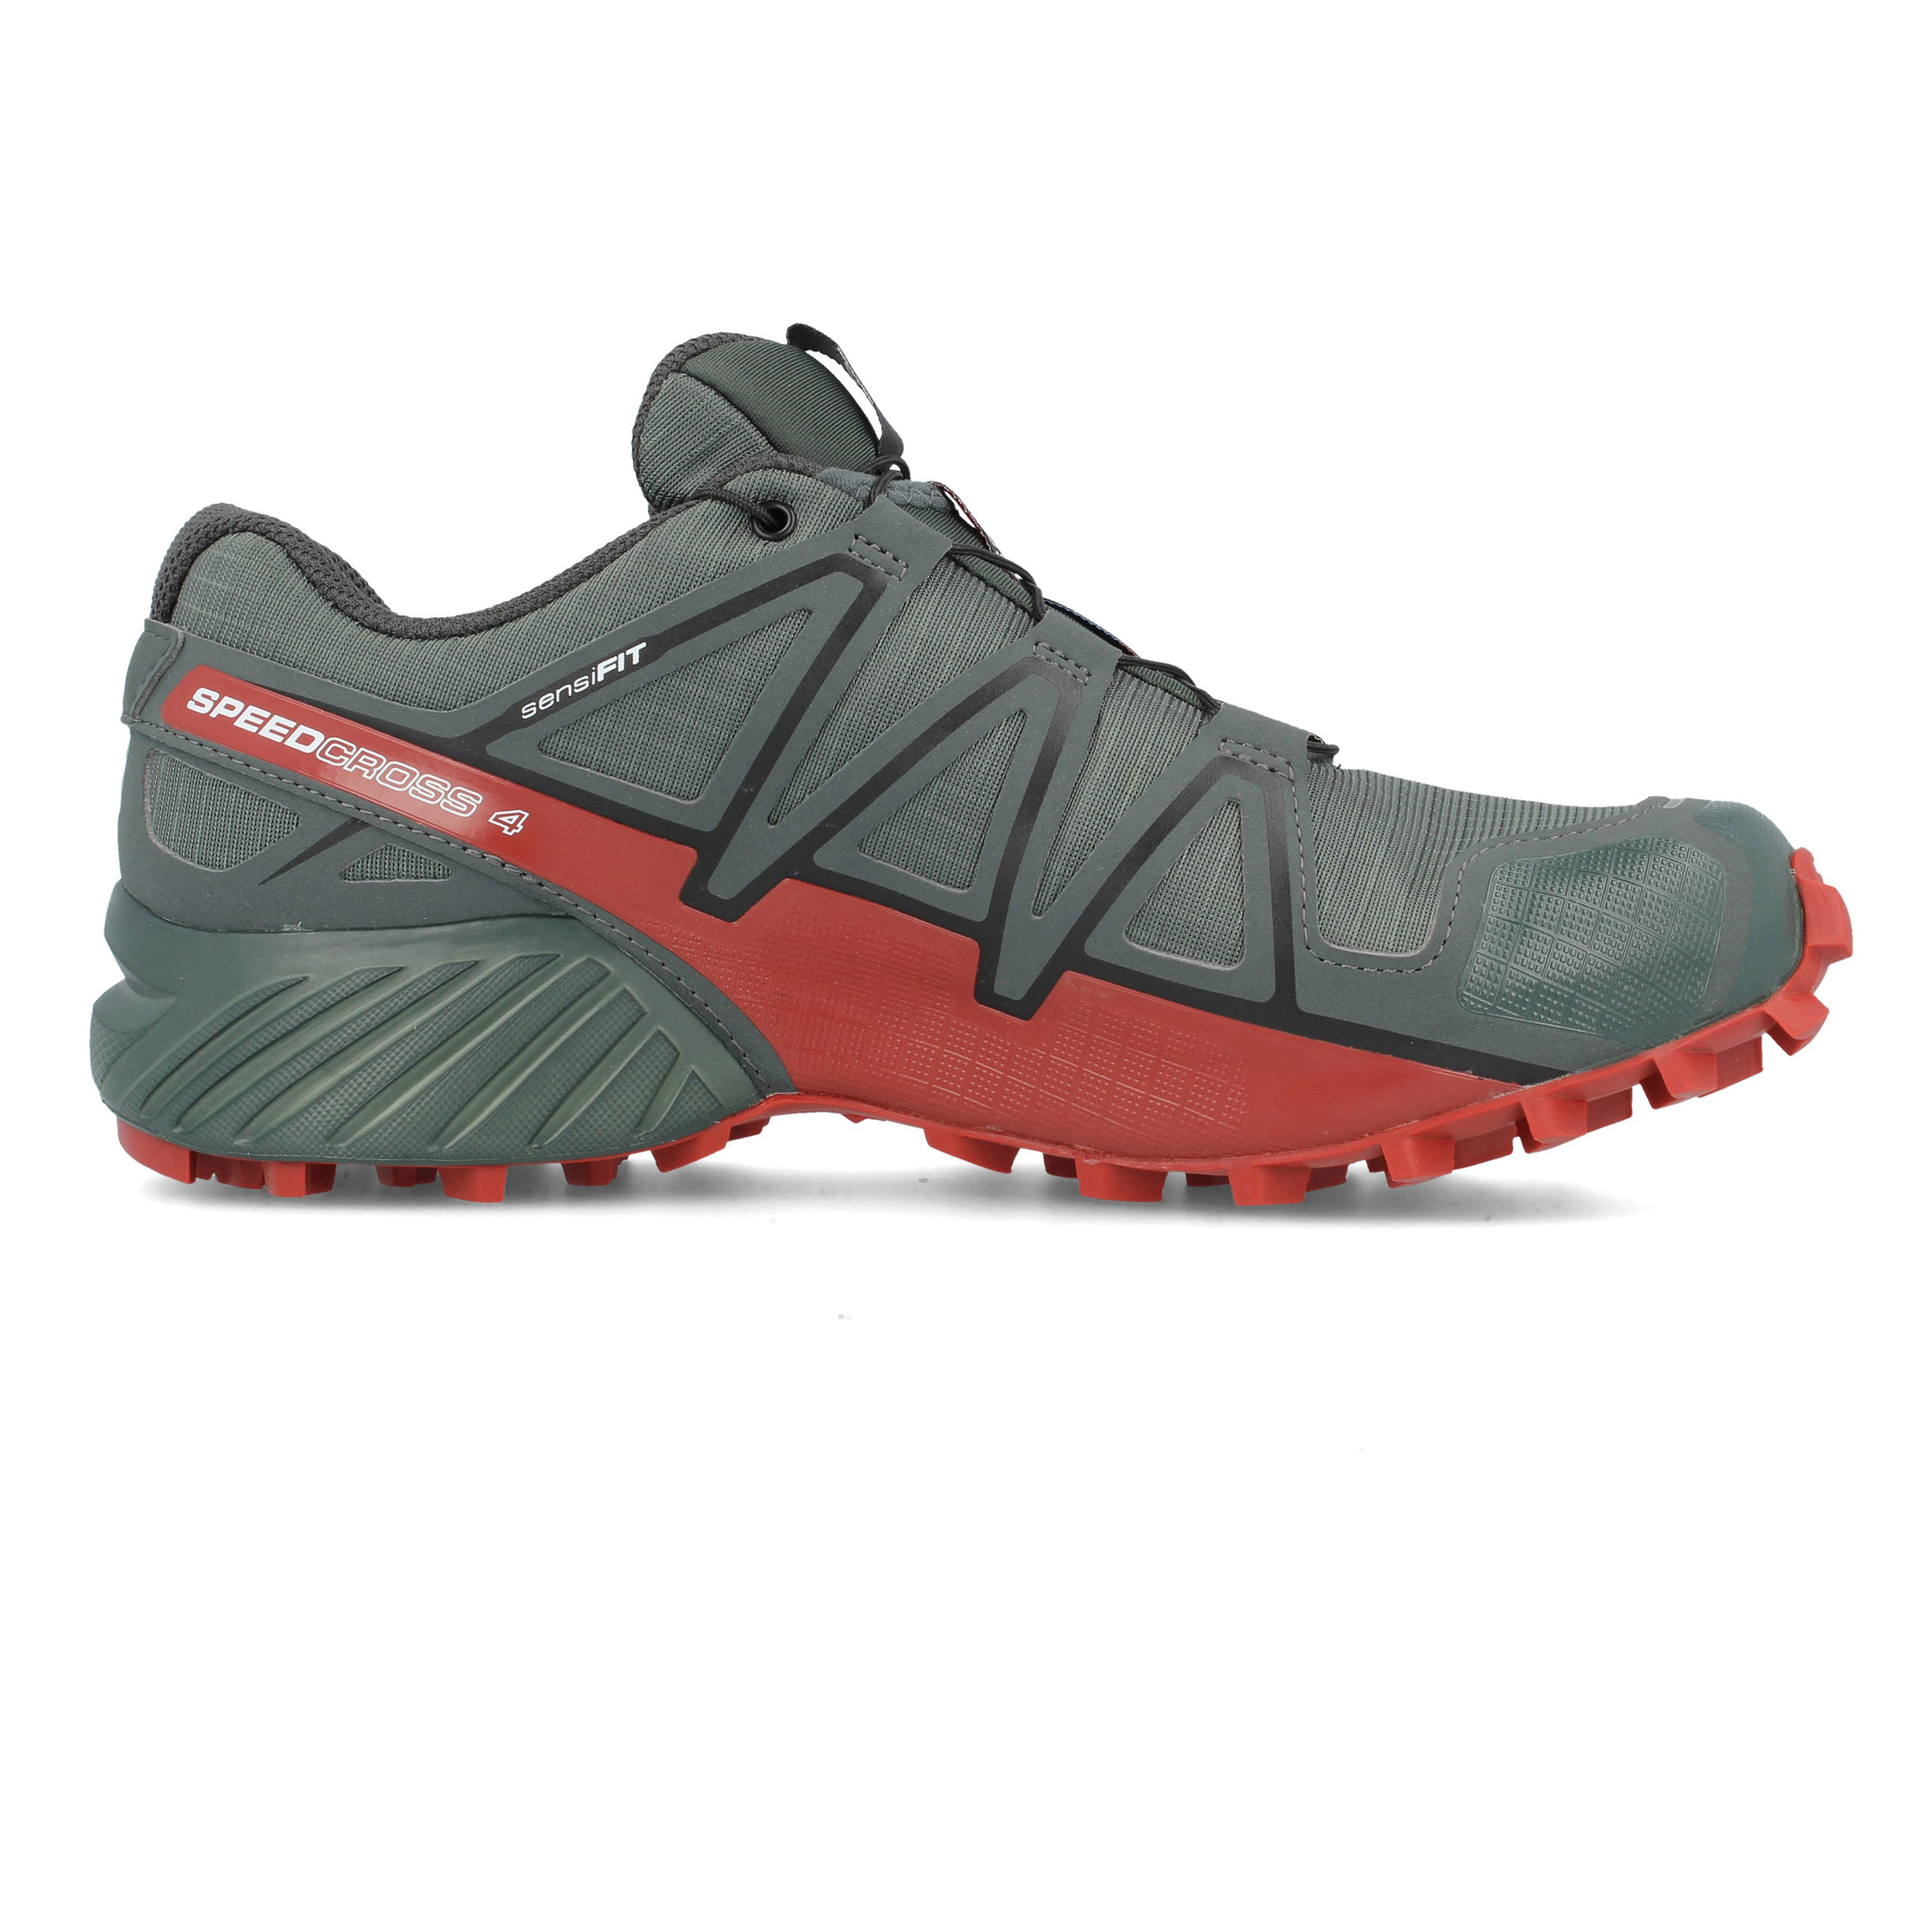 buy online 91136 d3e03 Salomon Hommes Speedcross 4 CS Trail Chaussures De Course À Pied Baskets  Sport